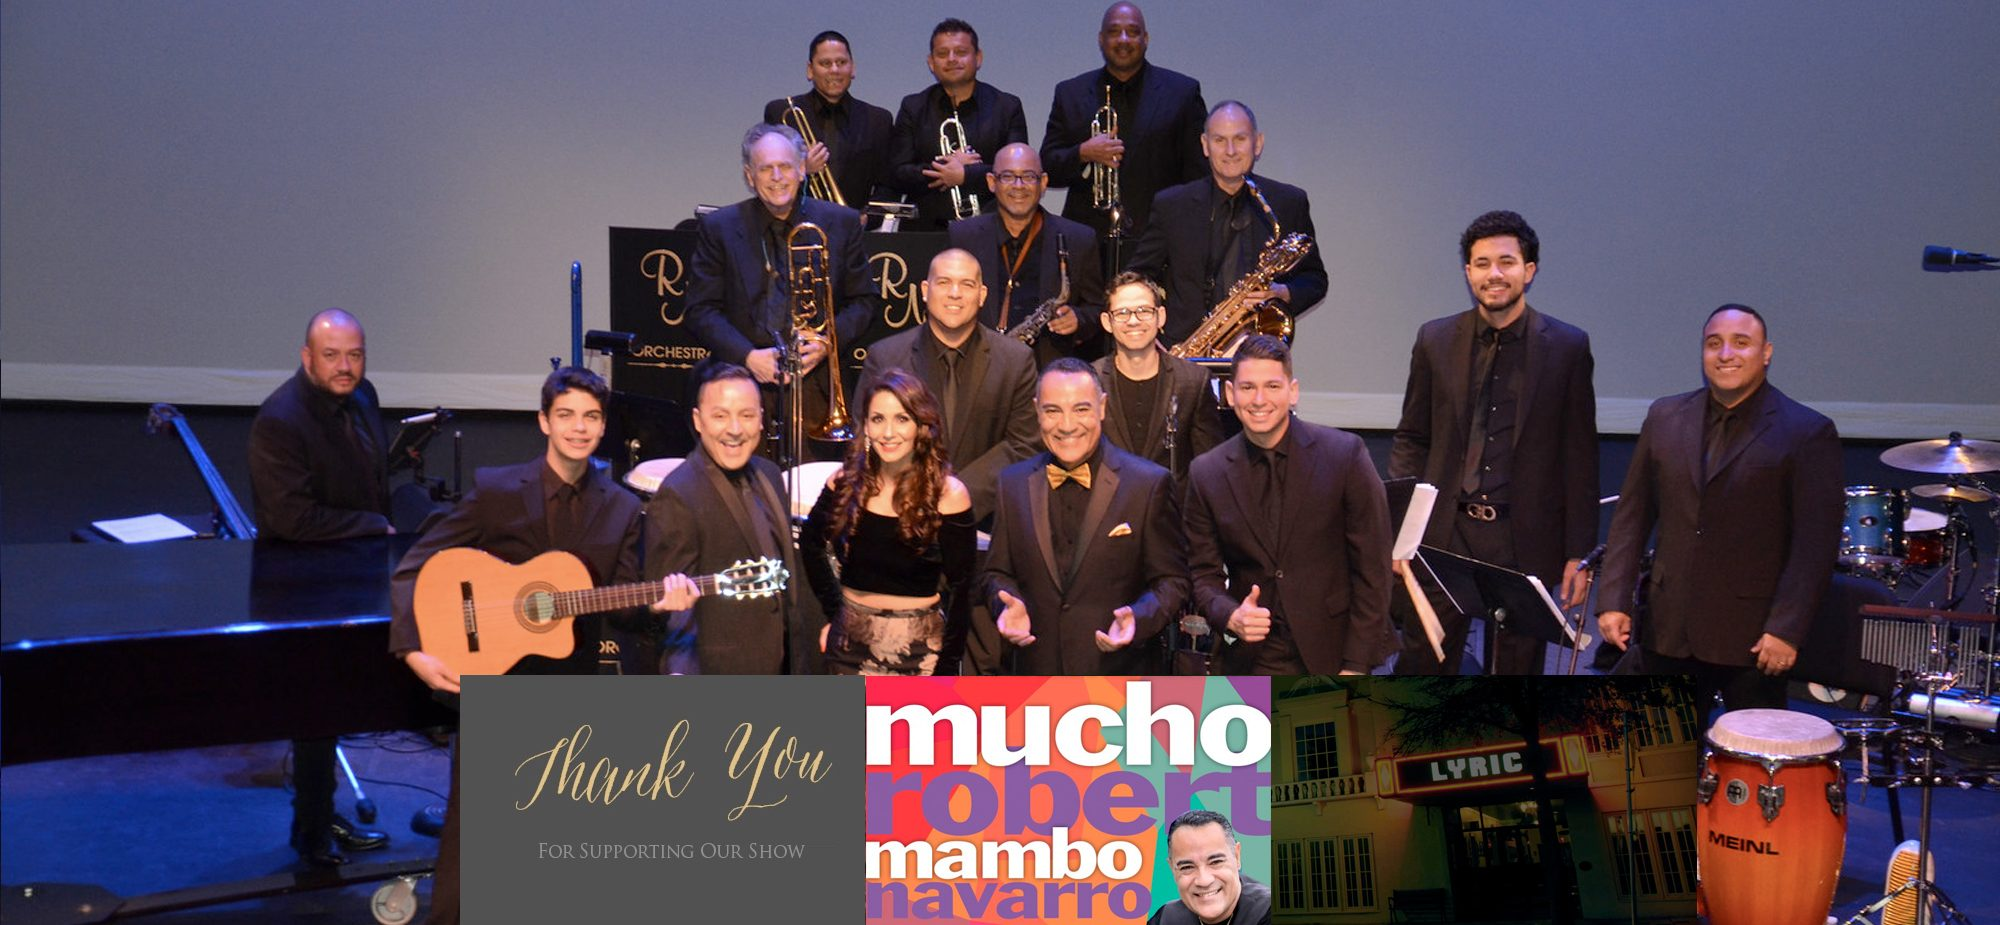 Thank You For A Great Mucho Mambo Show